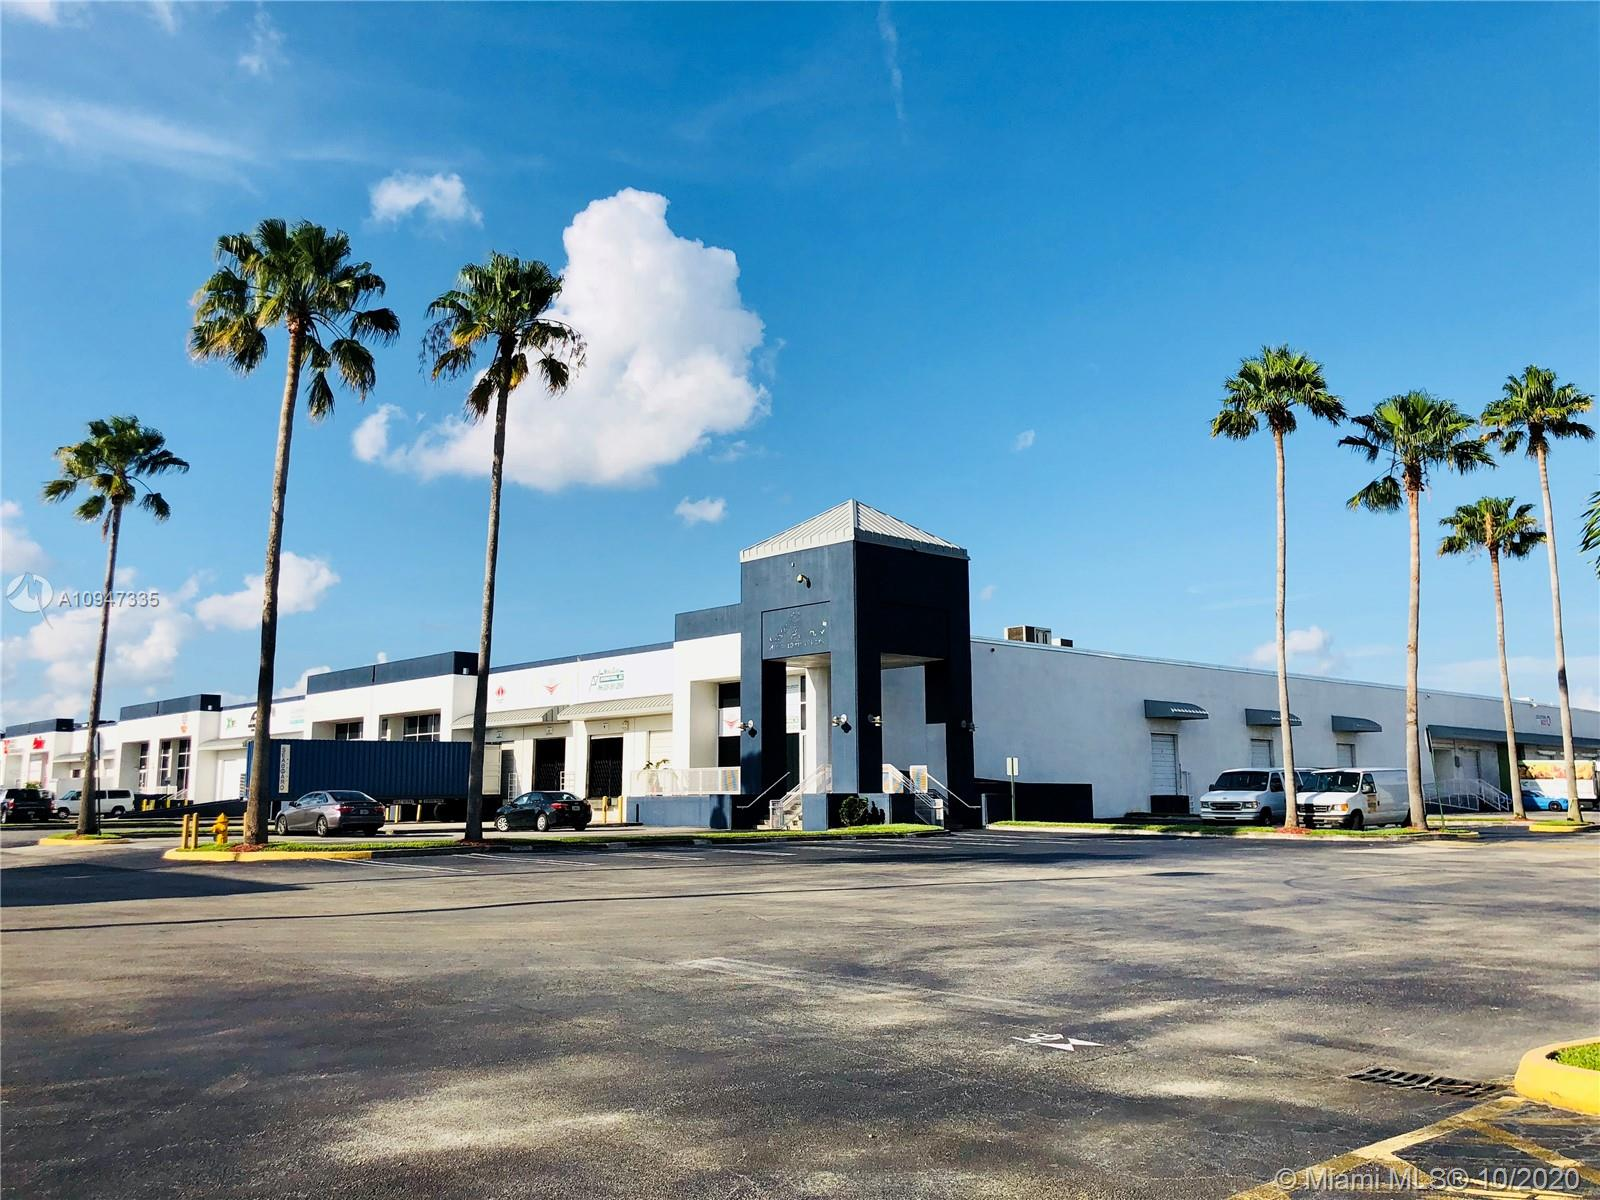 7500 NW 25th St # 7, Miami, Florida 33122, ,Commercial Sale,For Sale,7500 NW 25th St # 7,A10947335